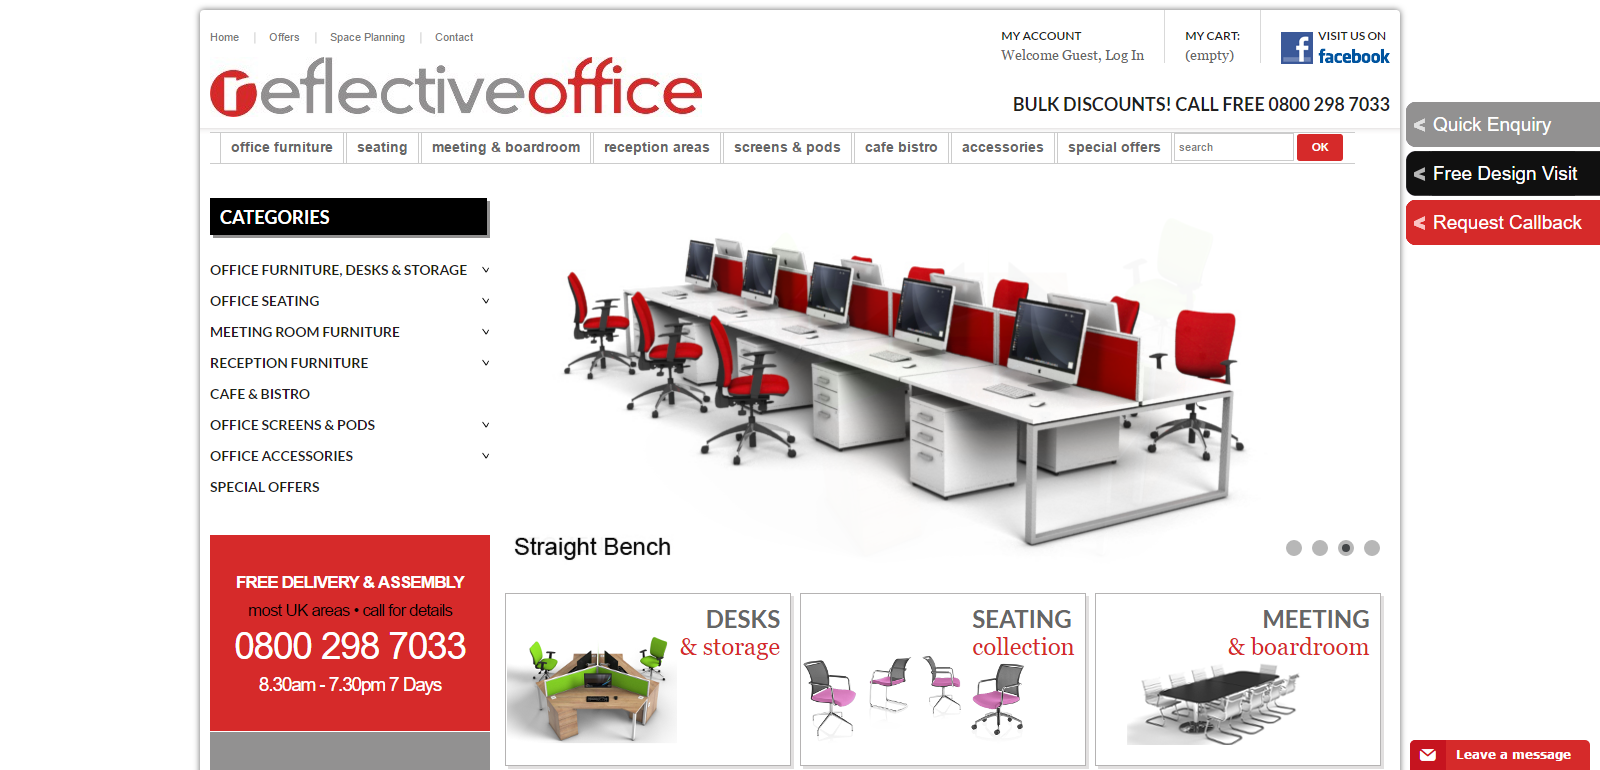 Reflective Office Website